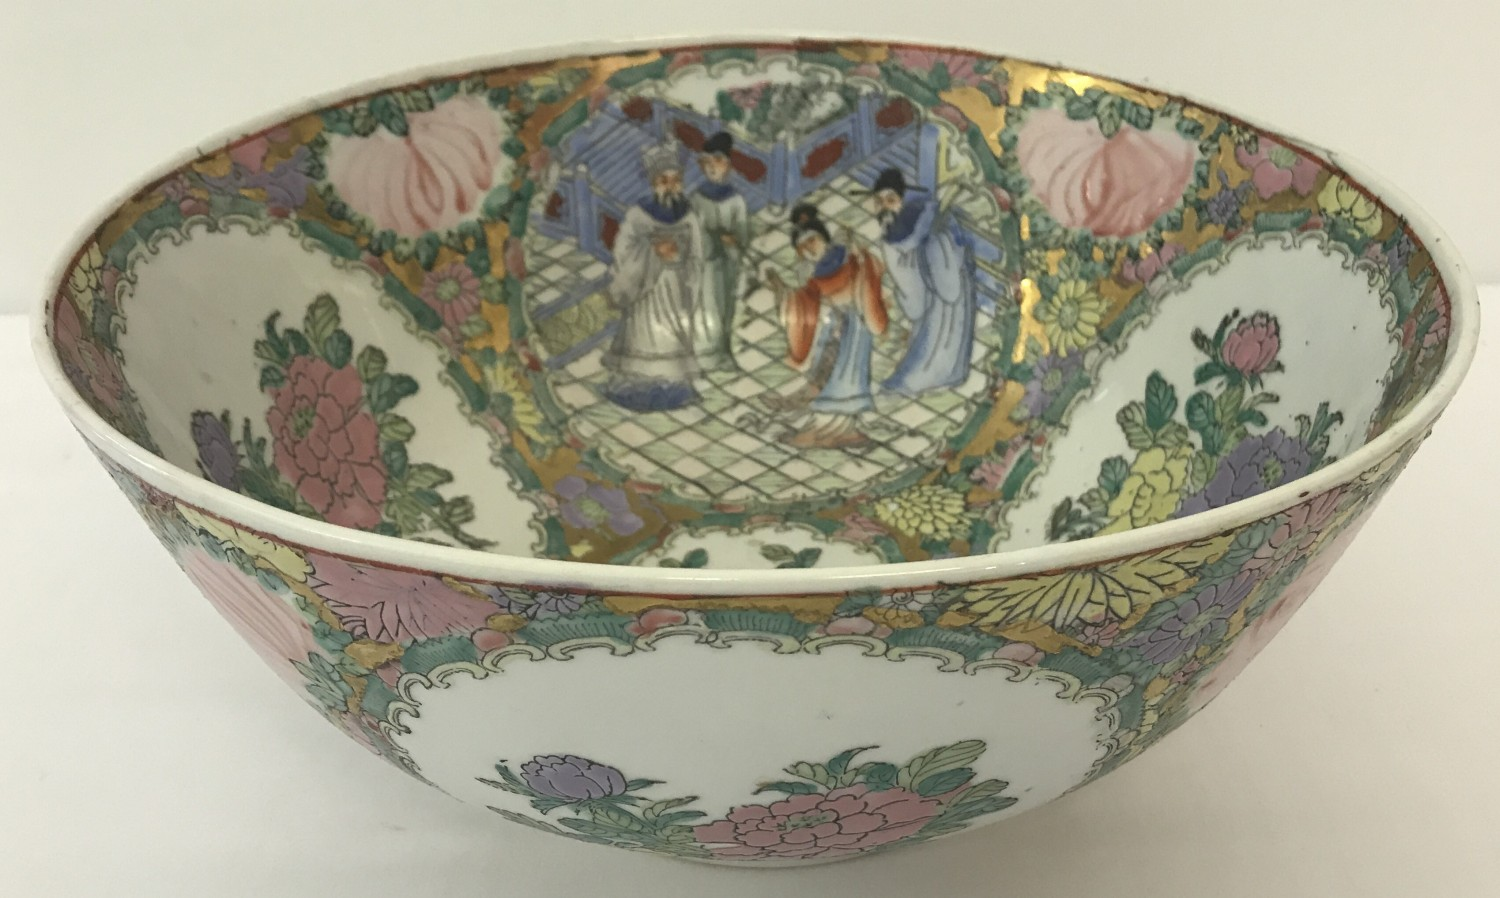 Lot 63 - A large Cantonese Famille Rose punch bowl.